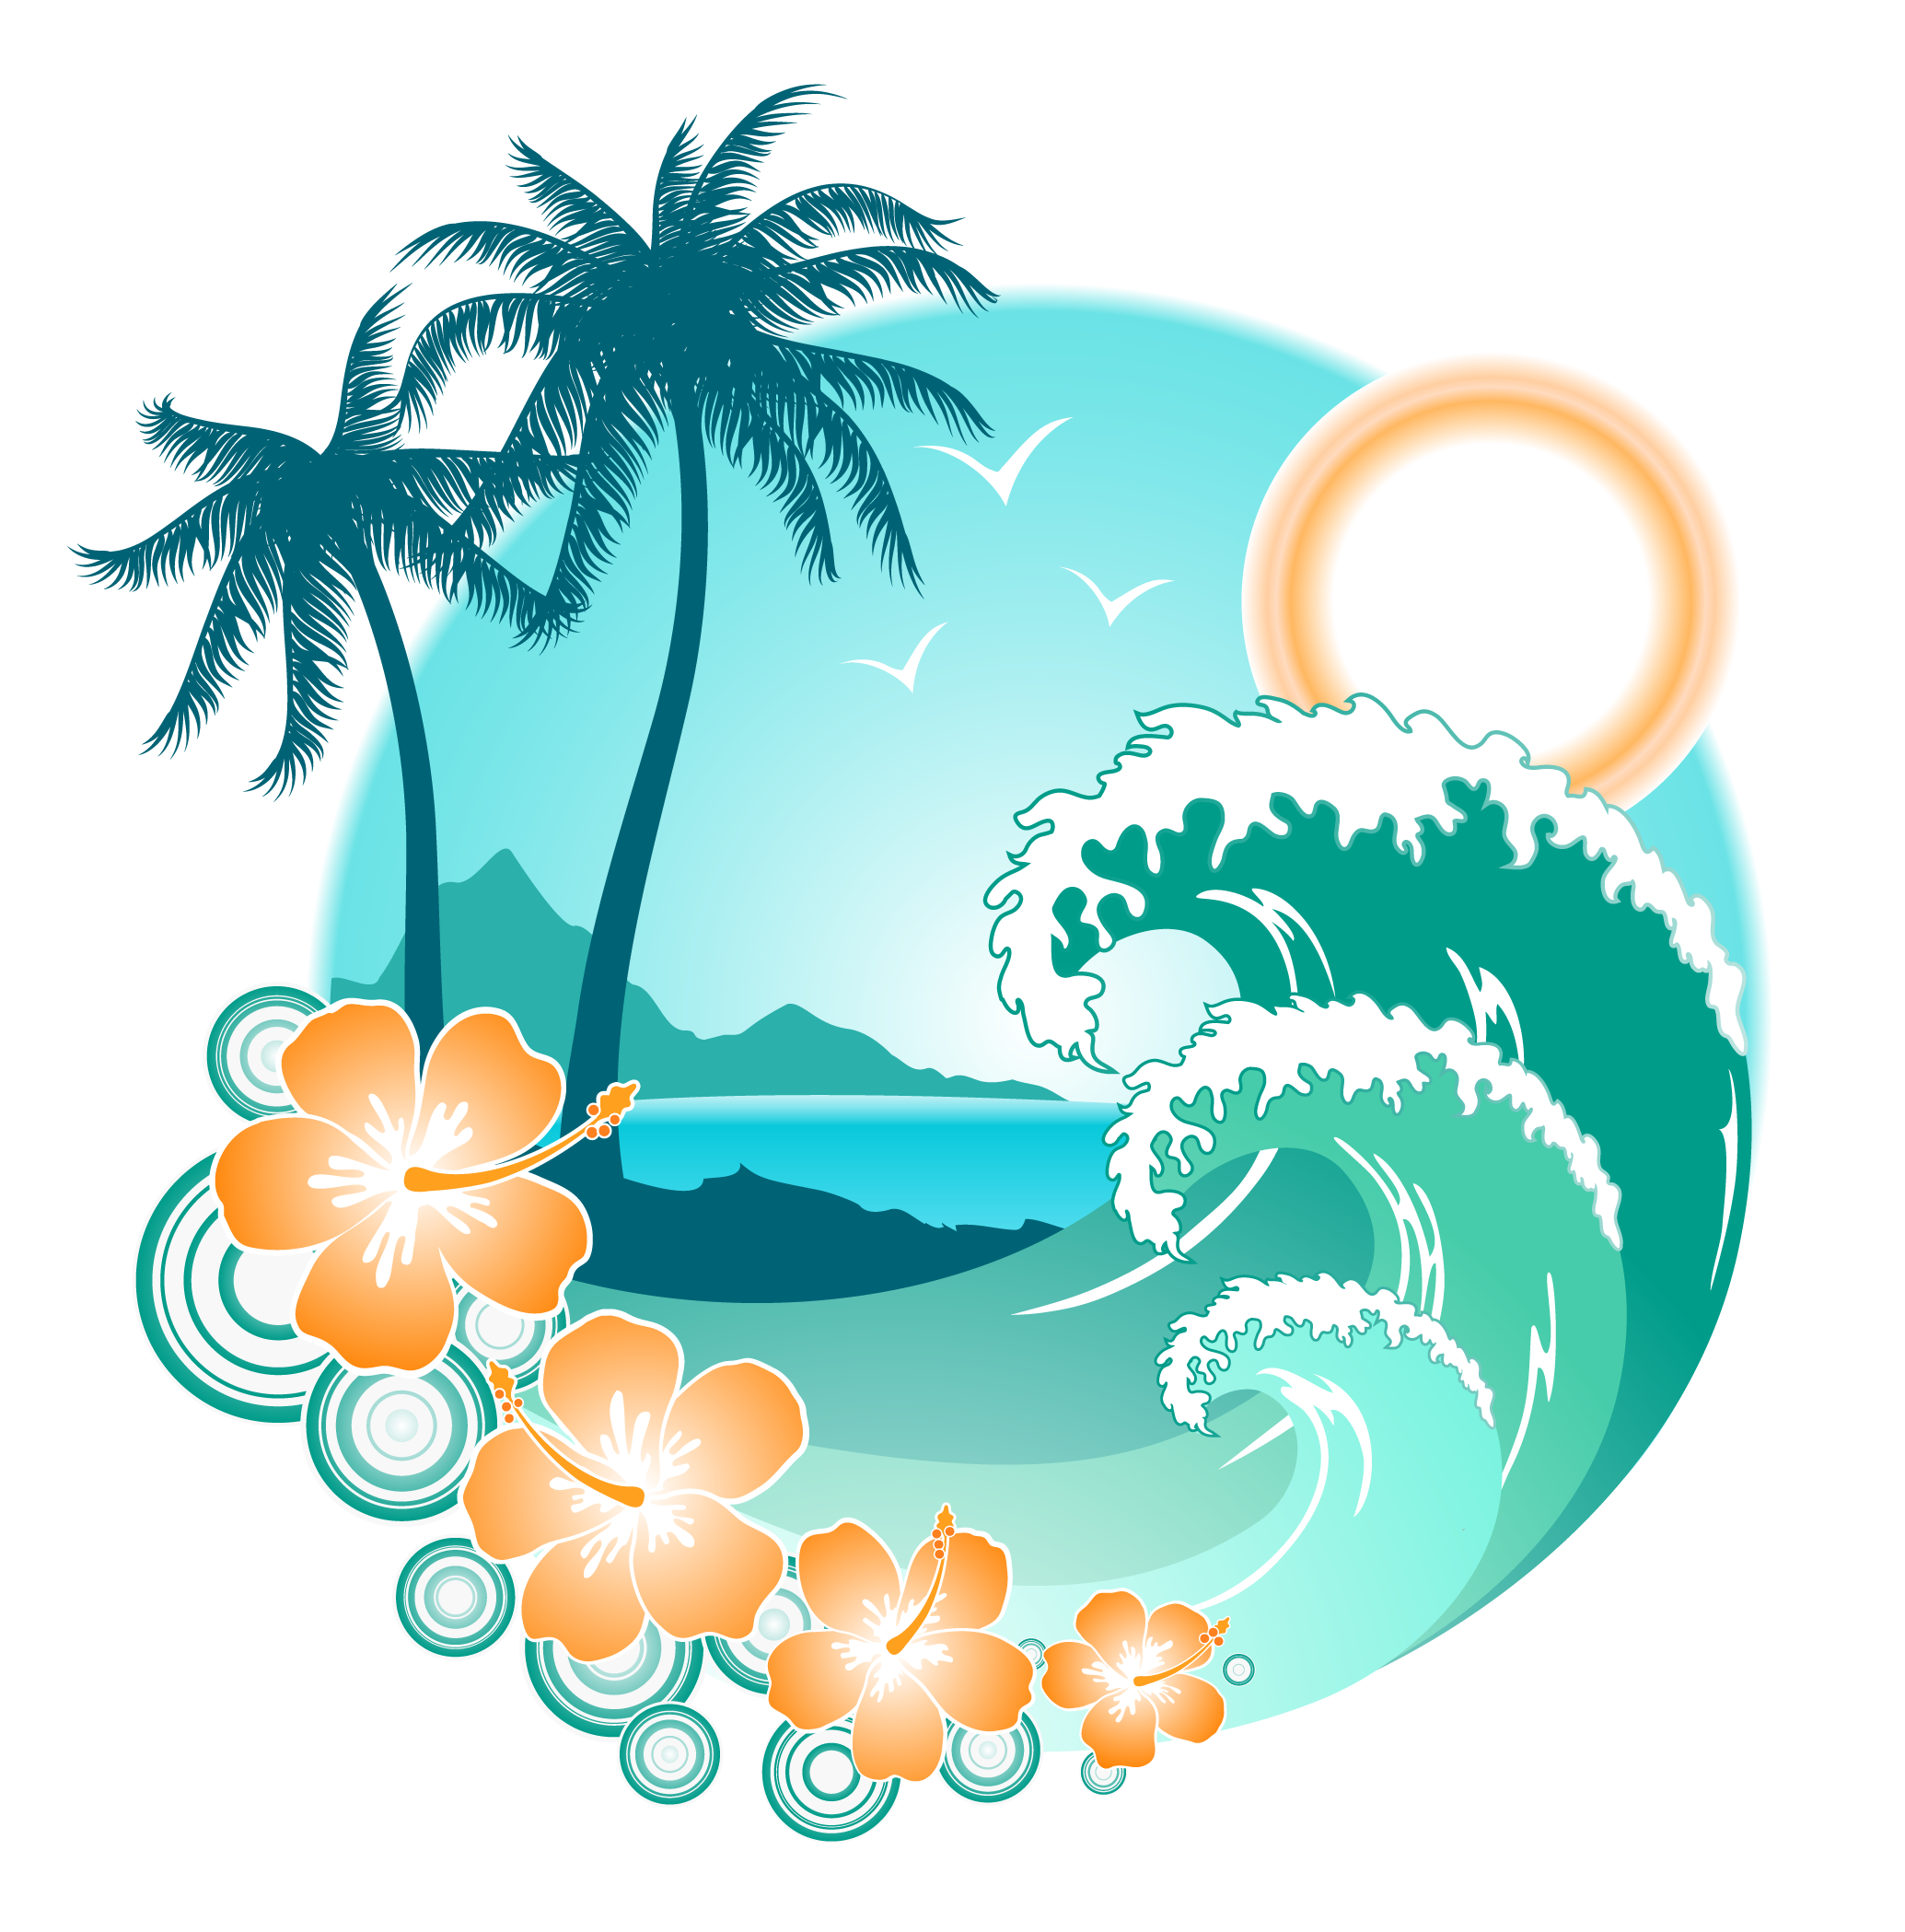 Png holiday images. Holidays transparent all